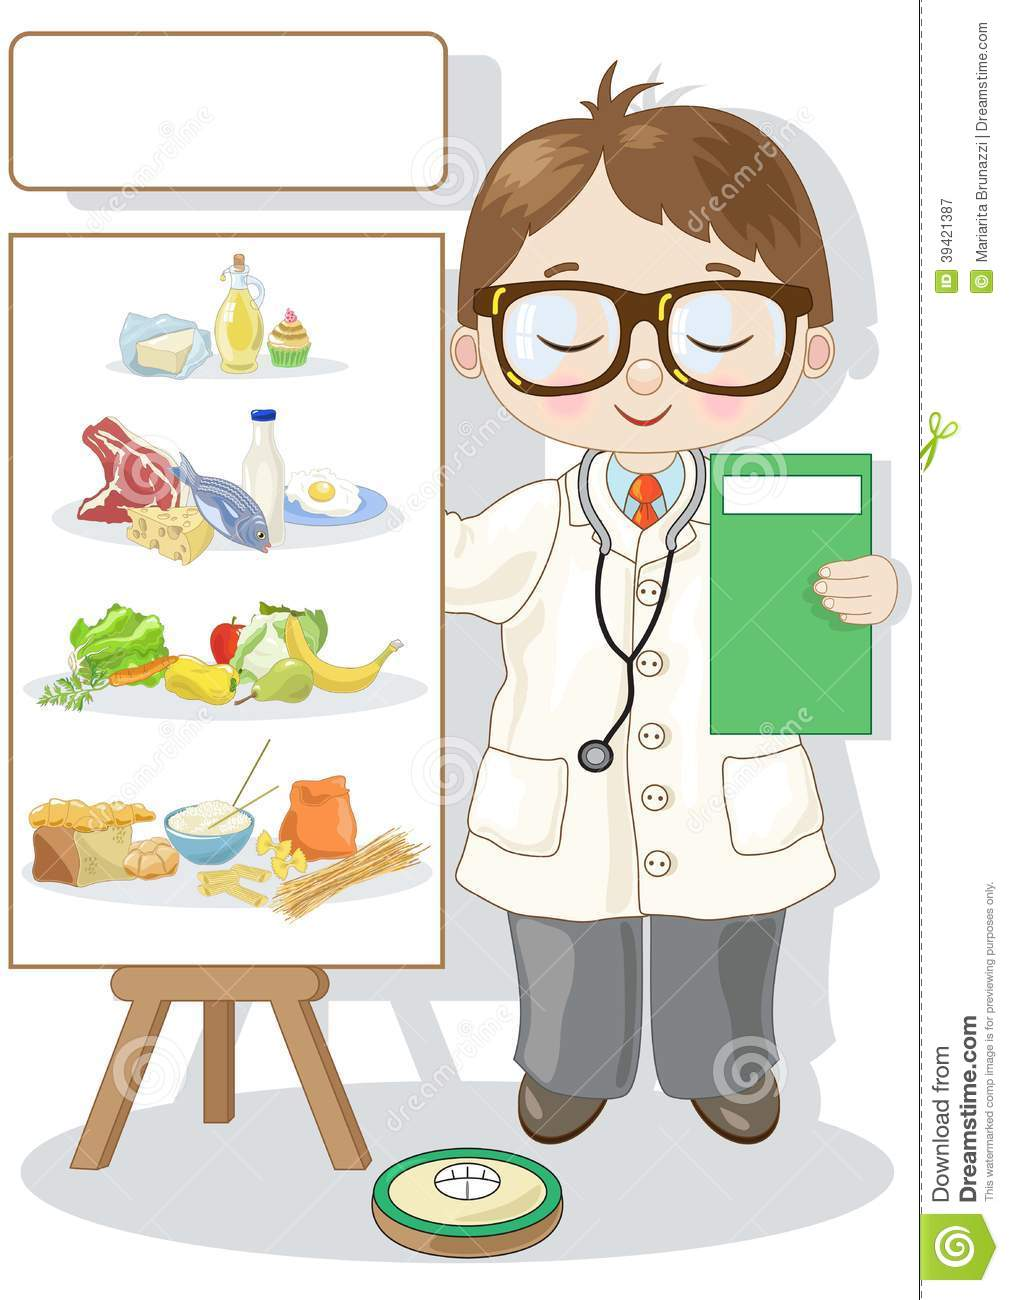 Small Dietitian Stock Vector - Image: 39421387